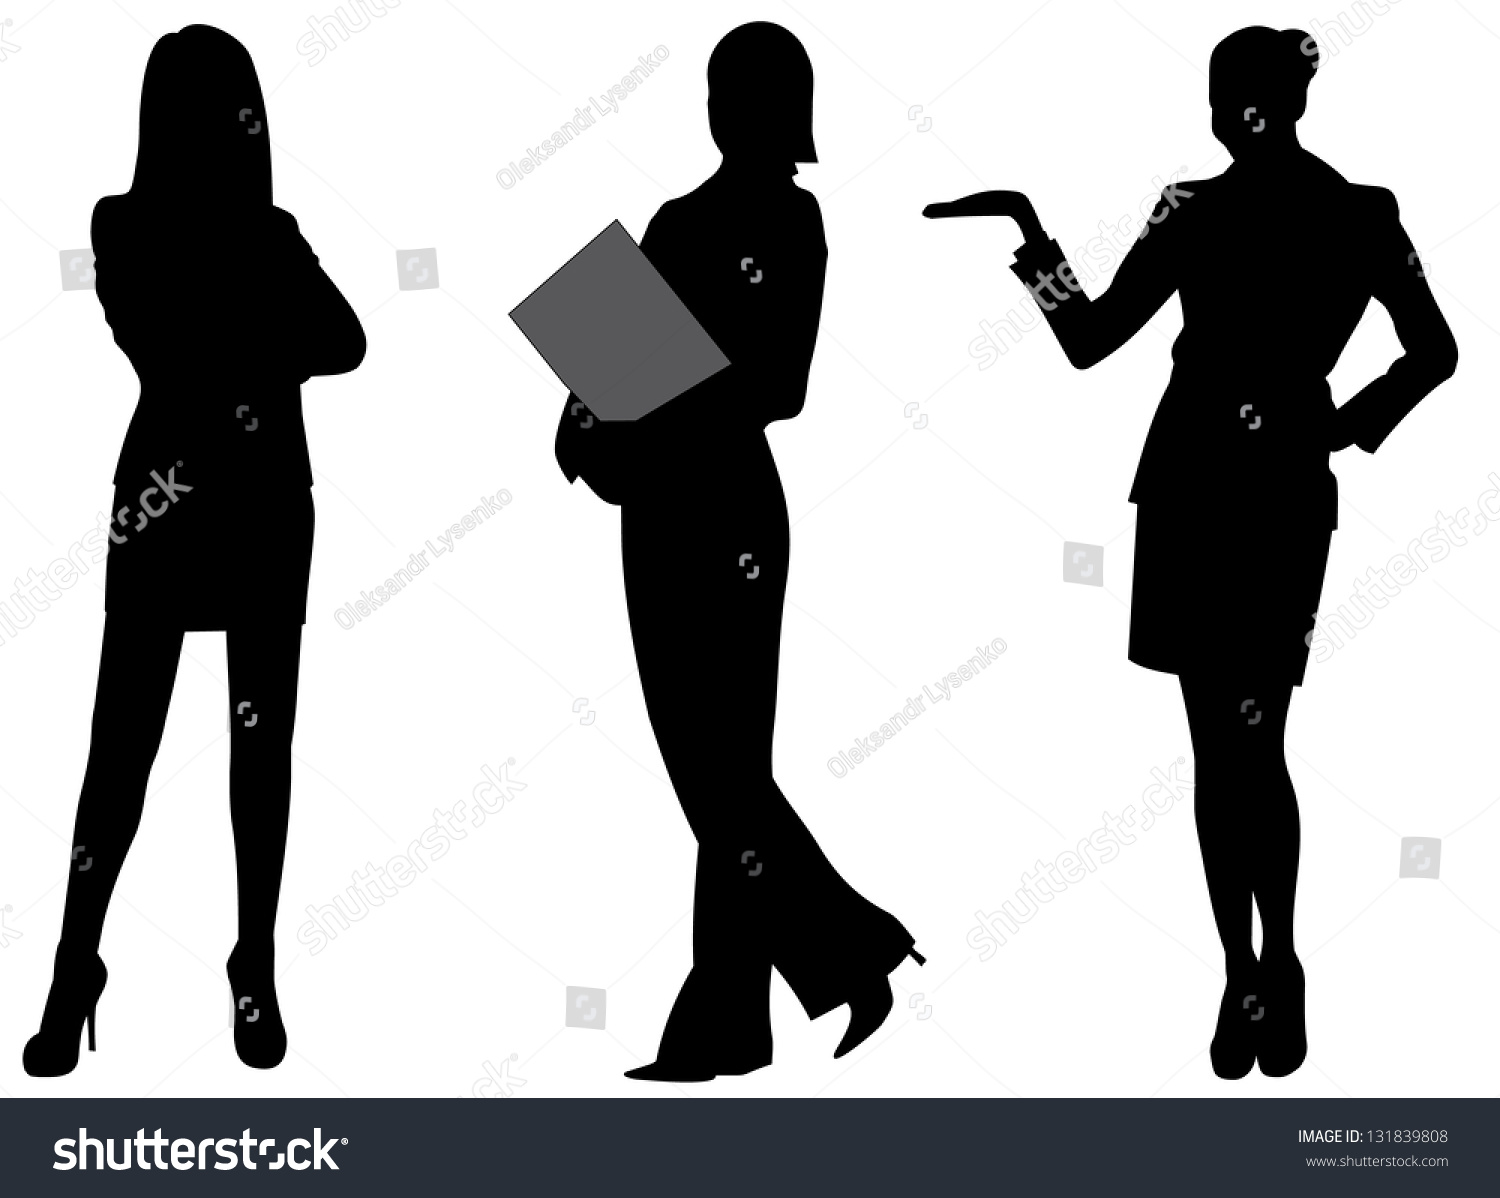 Business Woman Silhouette Vector Illustration Stock Vector ...